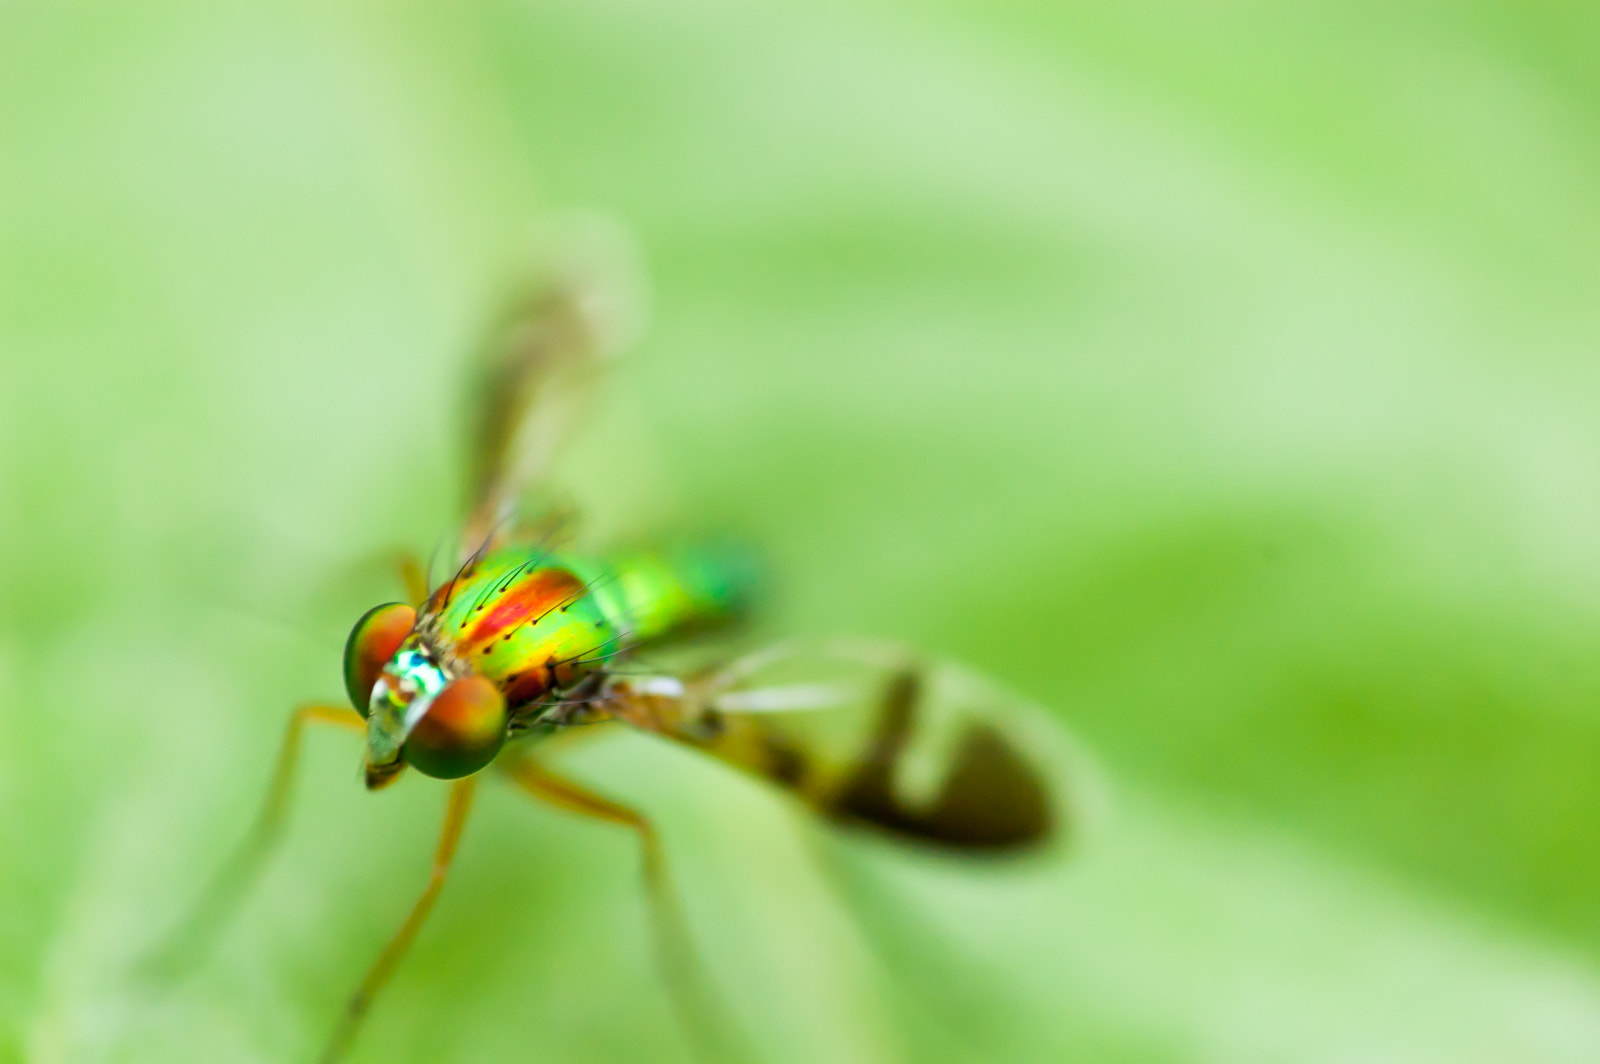 Photograph supa fly! zoom zoom by Kok Leong Lee on 500px